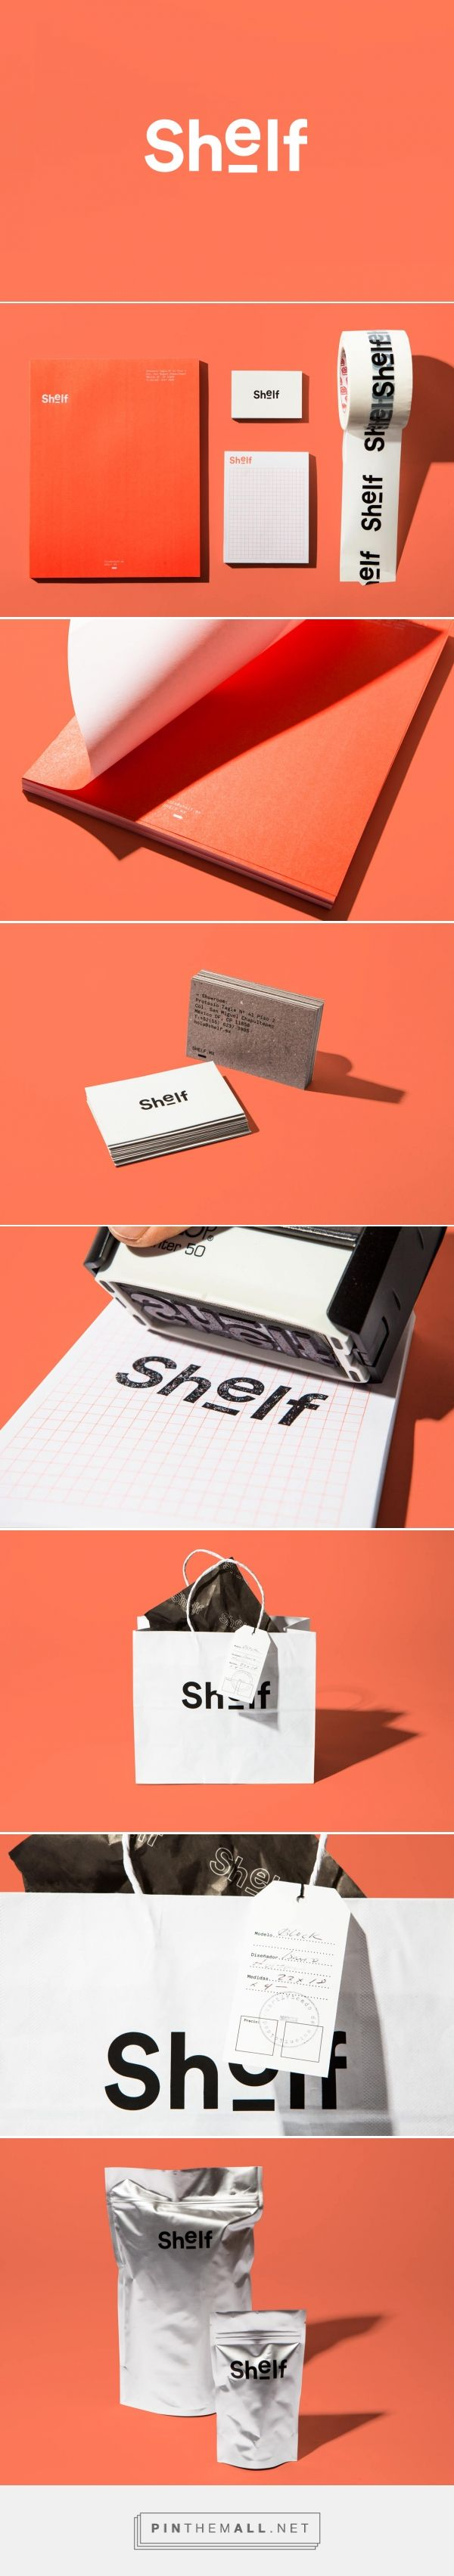 Shelf Branding by Sociedad Anonima | Fivestar Branding – Design and Branding…